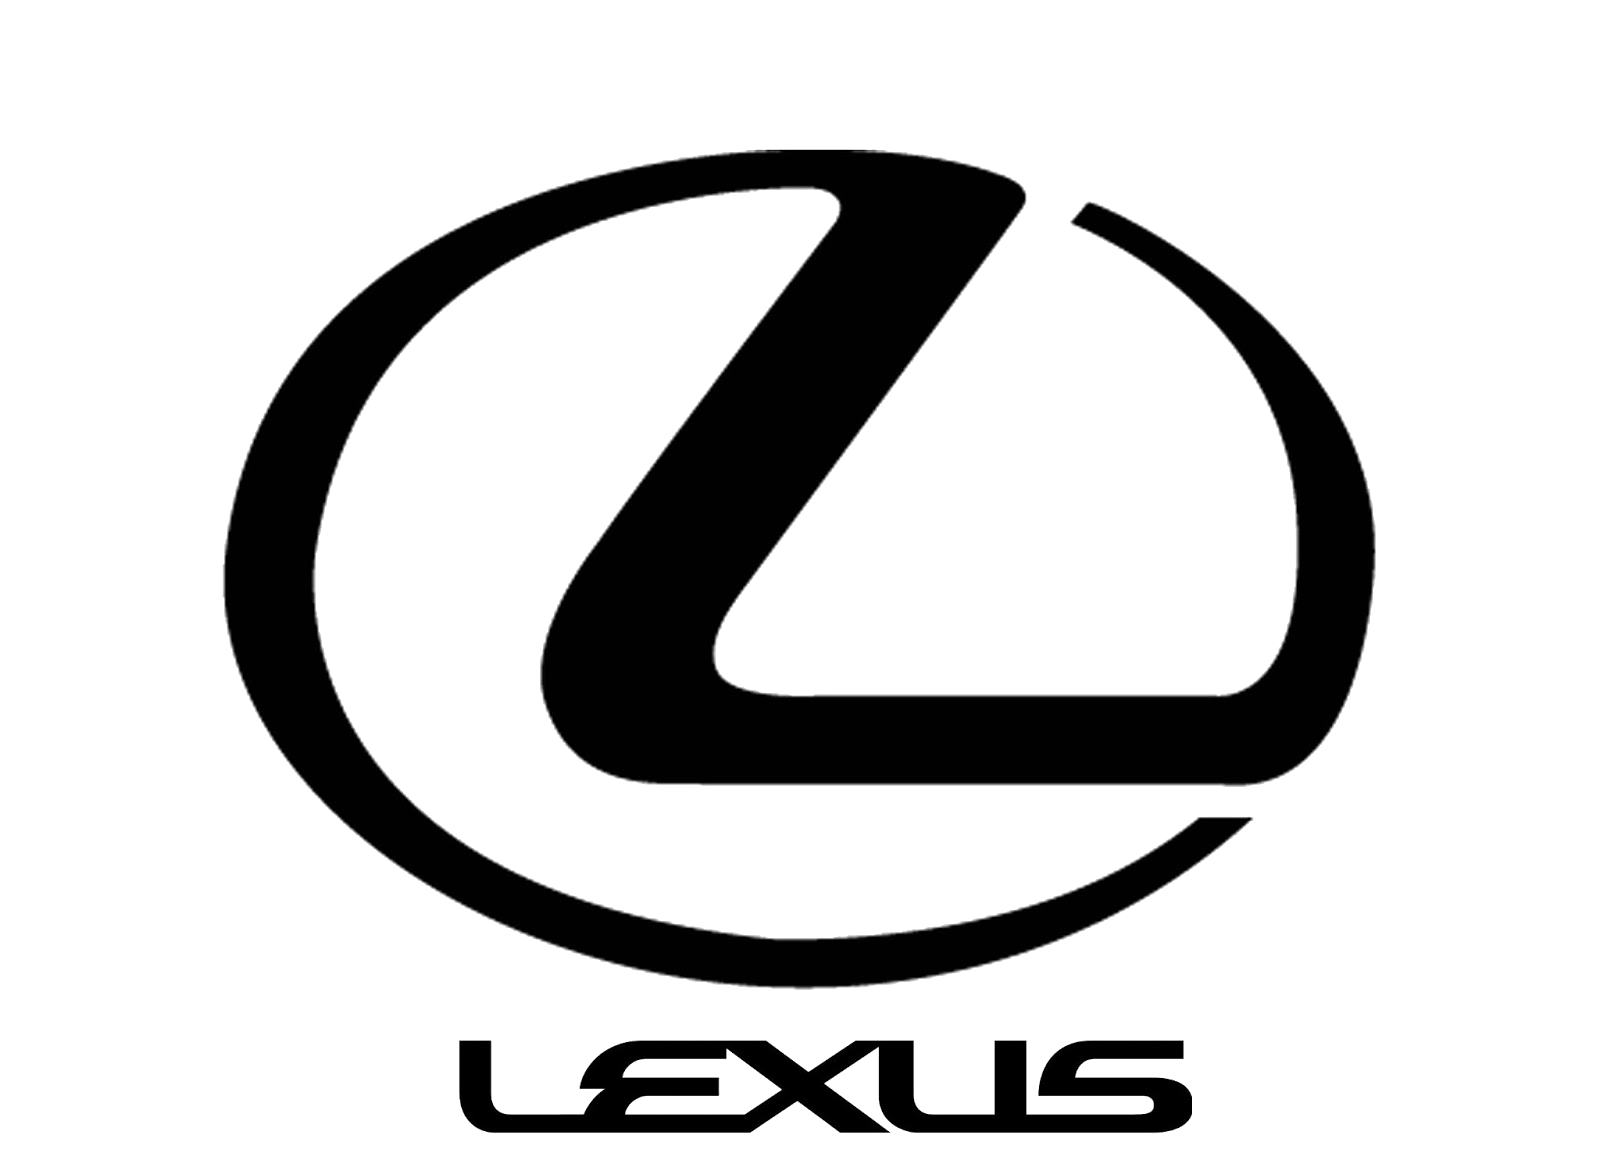 Lexus Logo Lexus Car Symbol Meaning And History